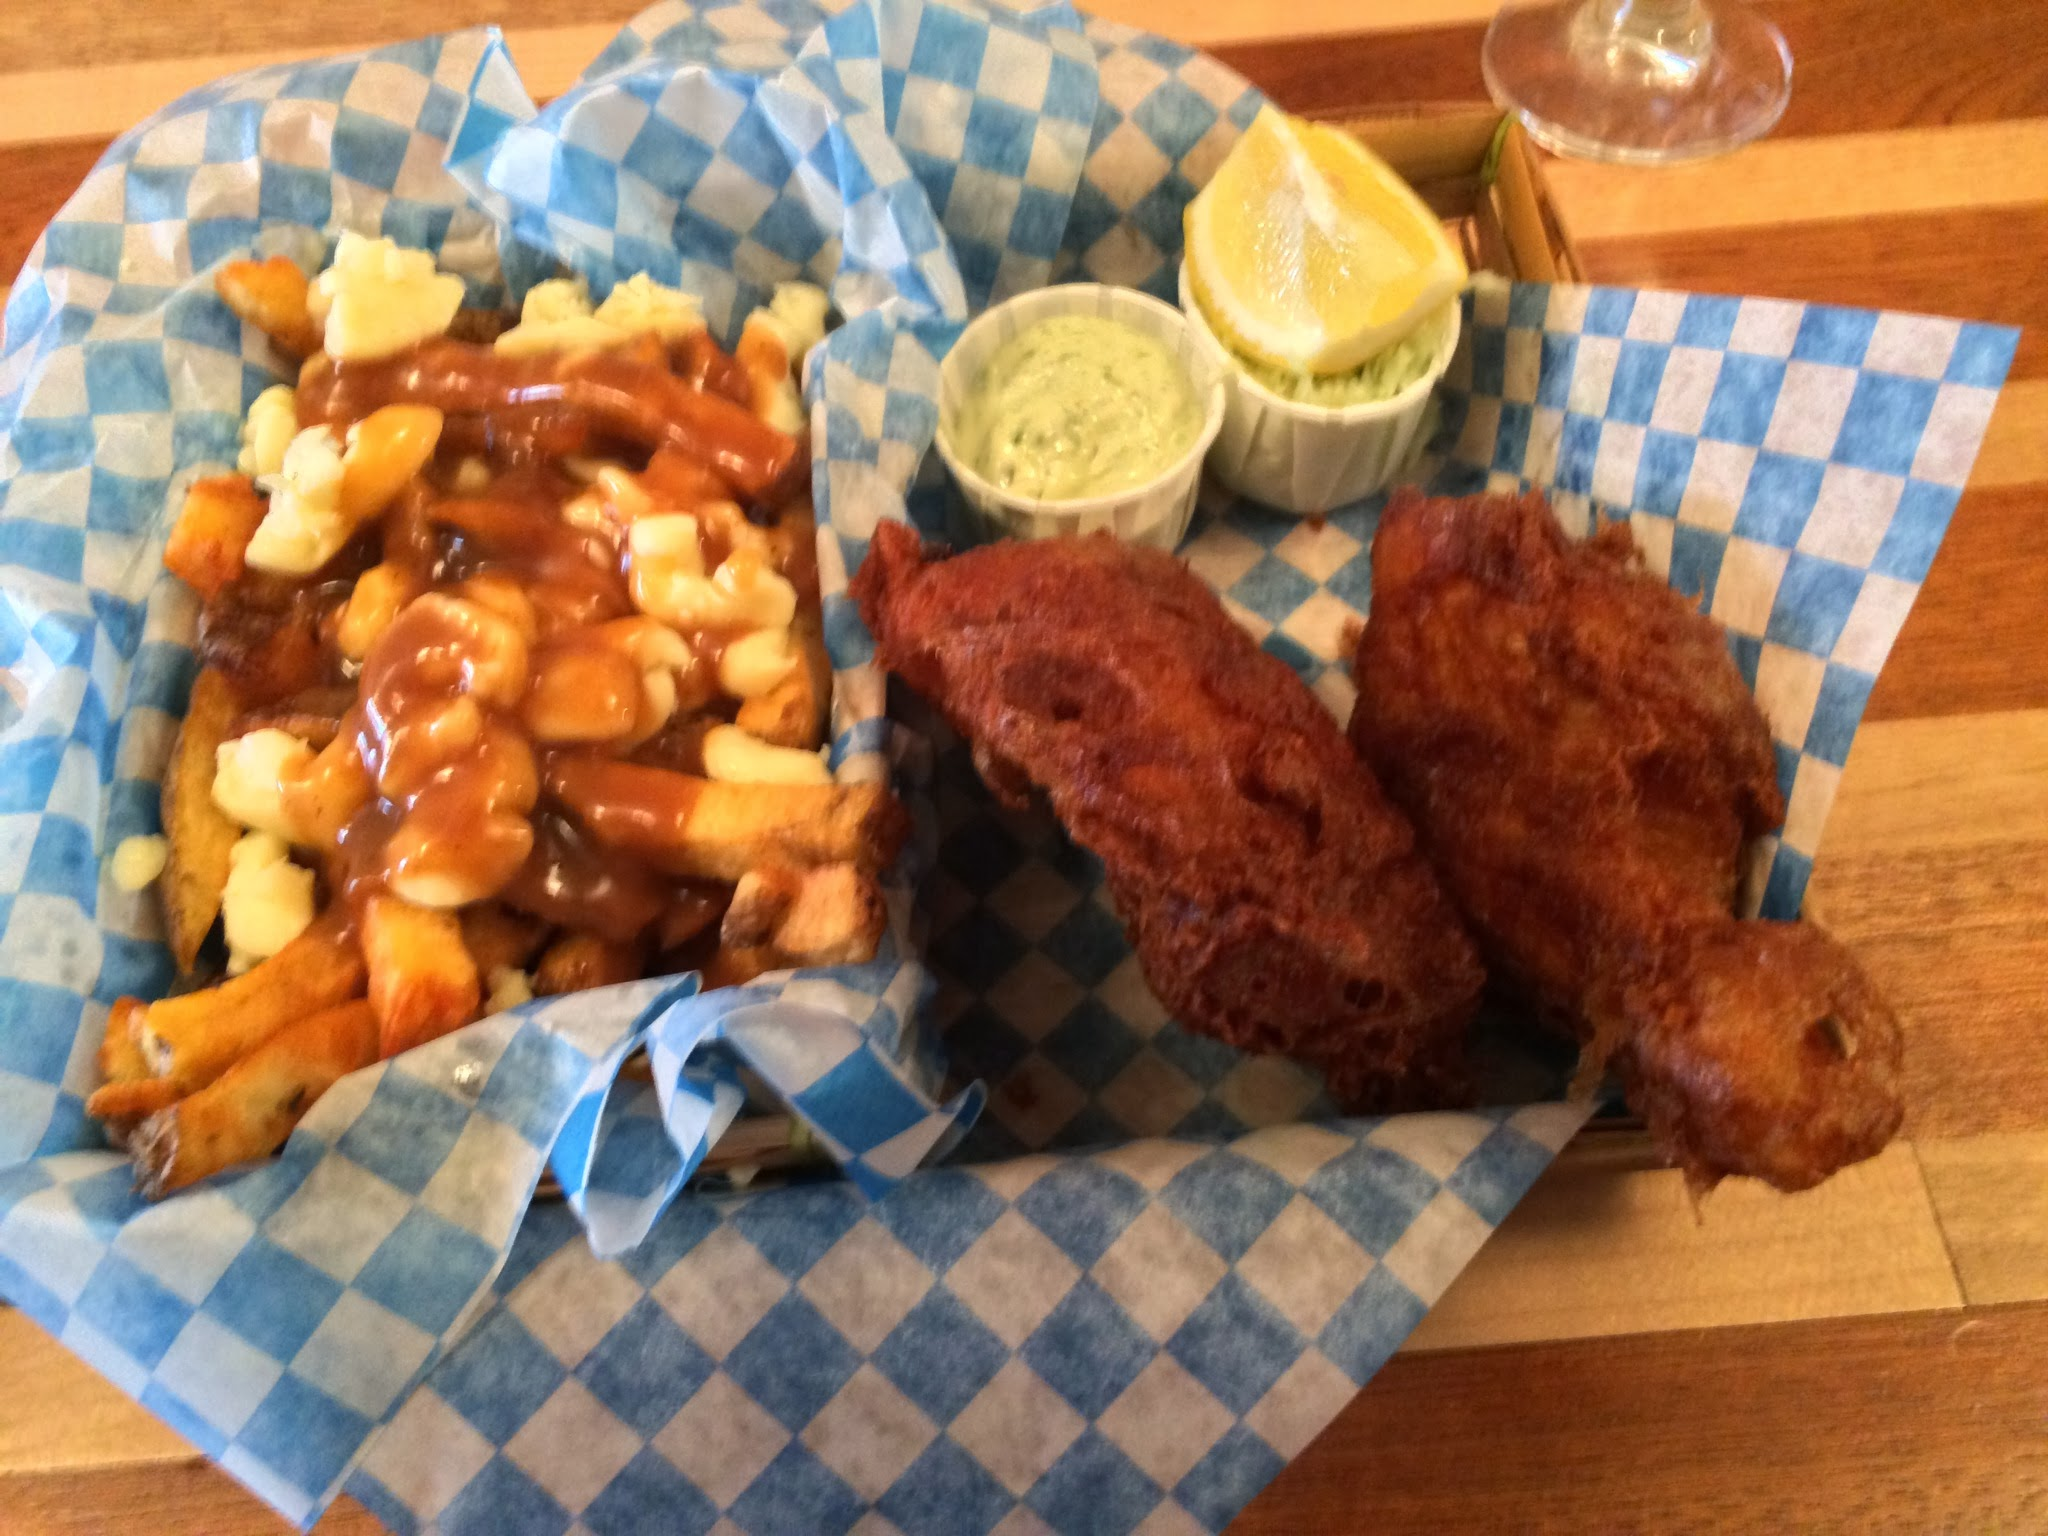 Comptoir 21: Possibly Montreal's Best Fish & Chips